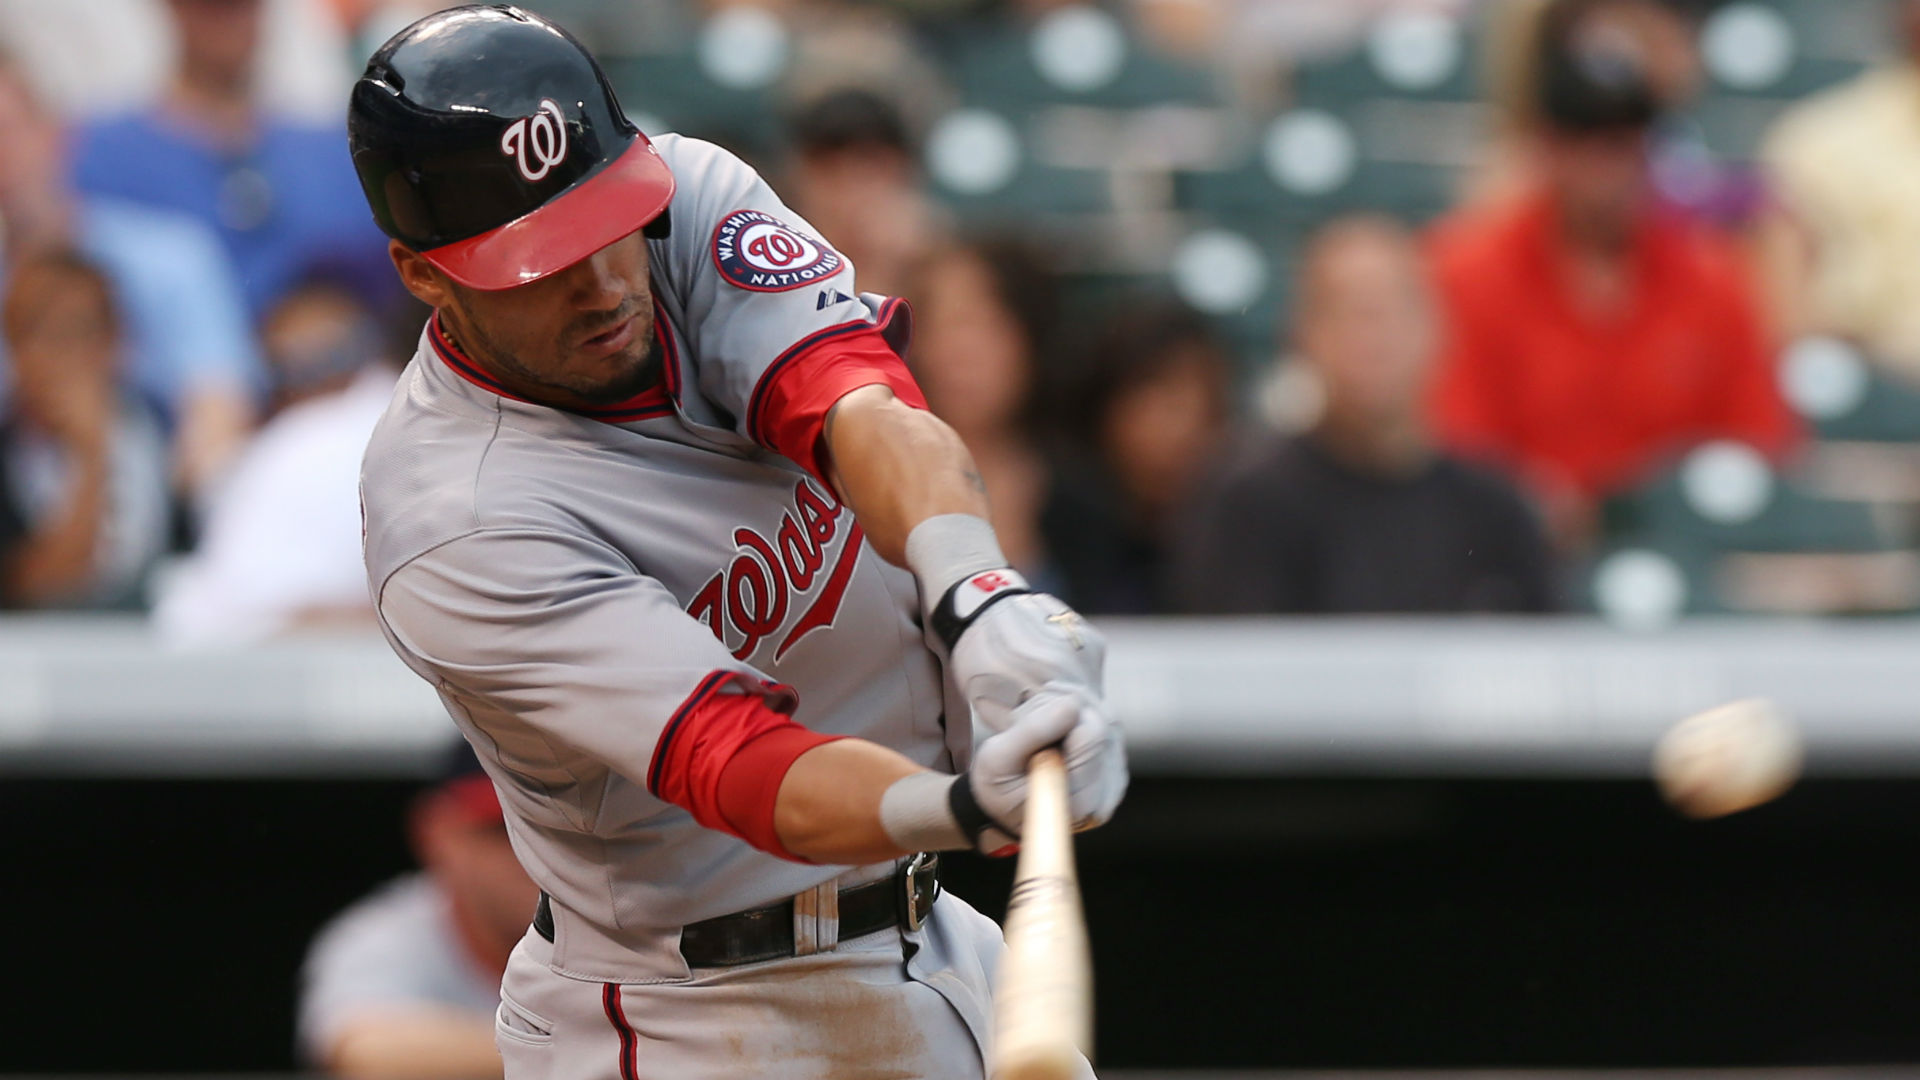 Daily fantasy baseball lineup: Saturday's buy/sell picks for DraftKings leagues